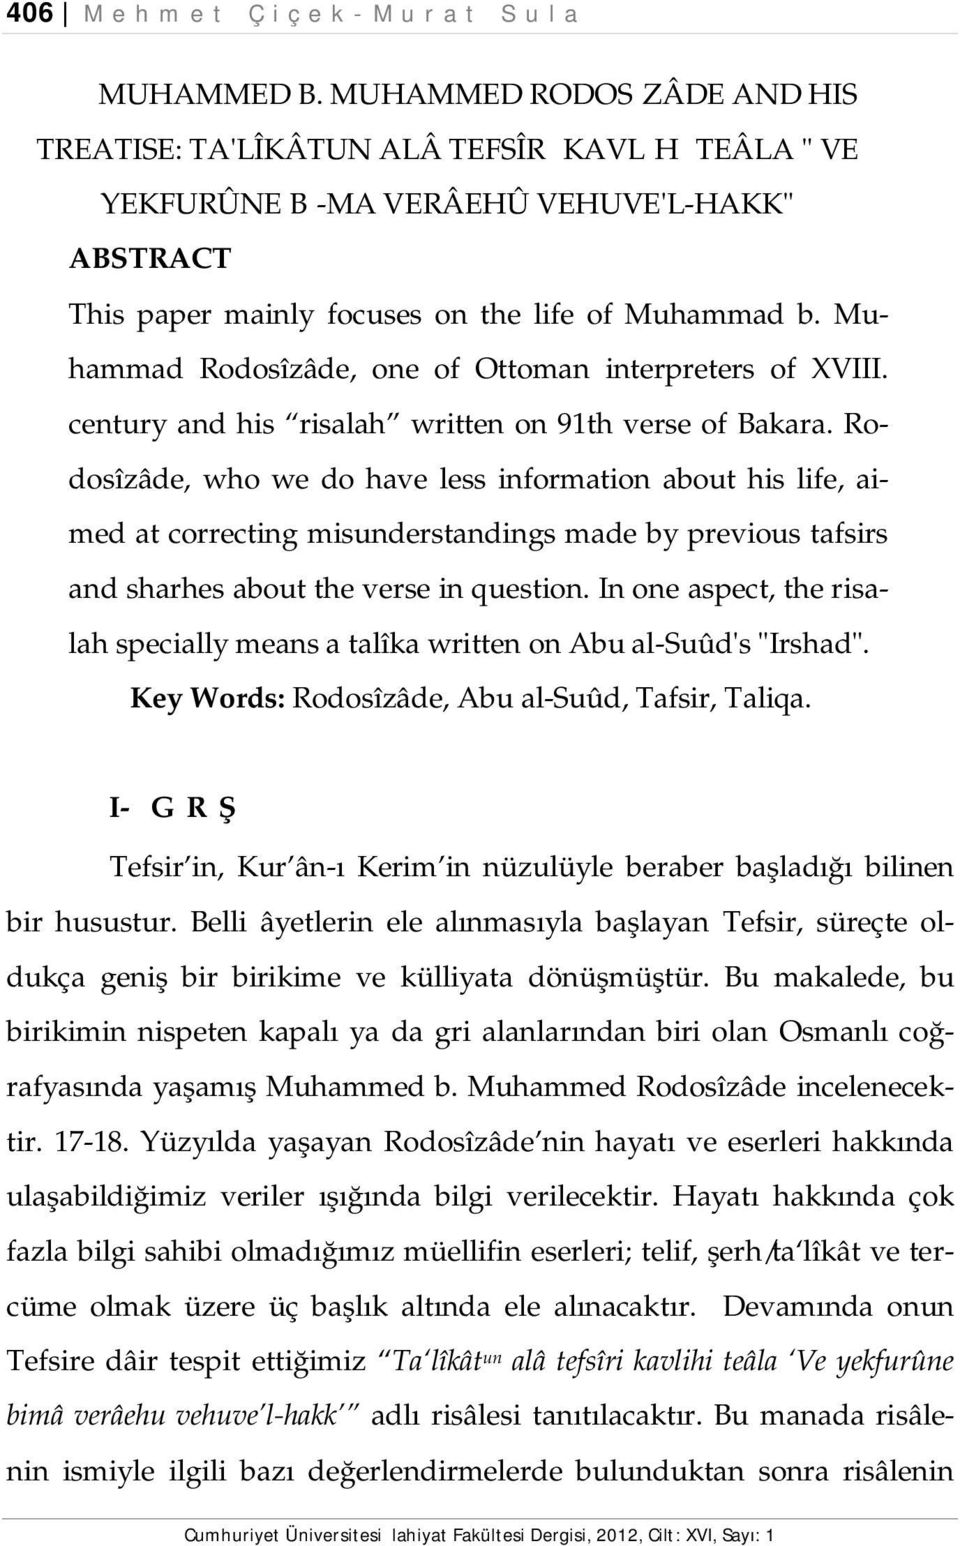 Muhammad Rodosîzâde, one of Ottoman interpreters of XVIII. century and his risalah written on 91th verse of Bakara.